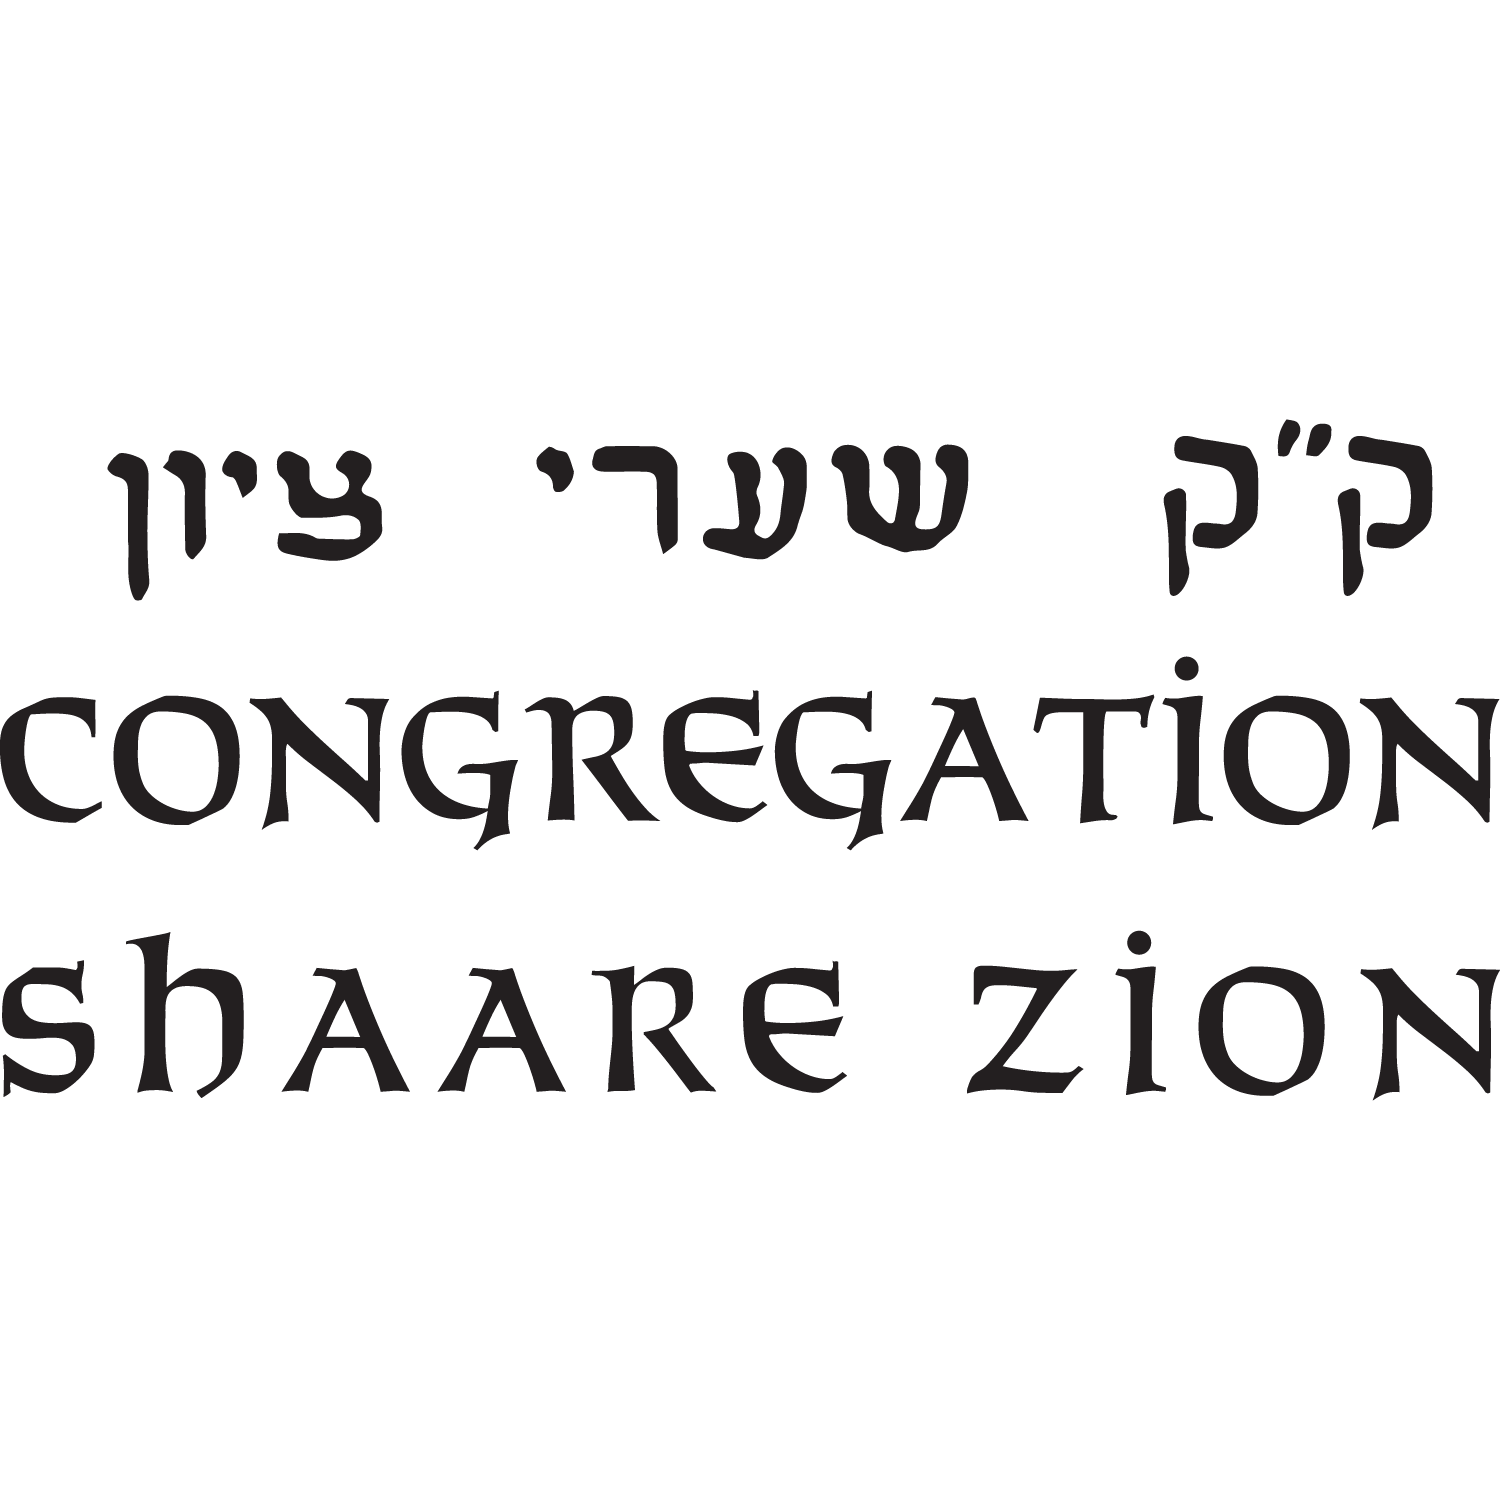 gg companies_Shaare Zion